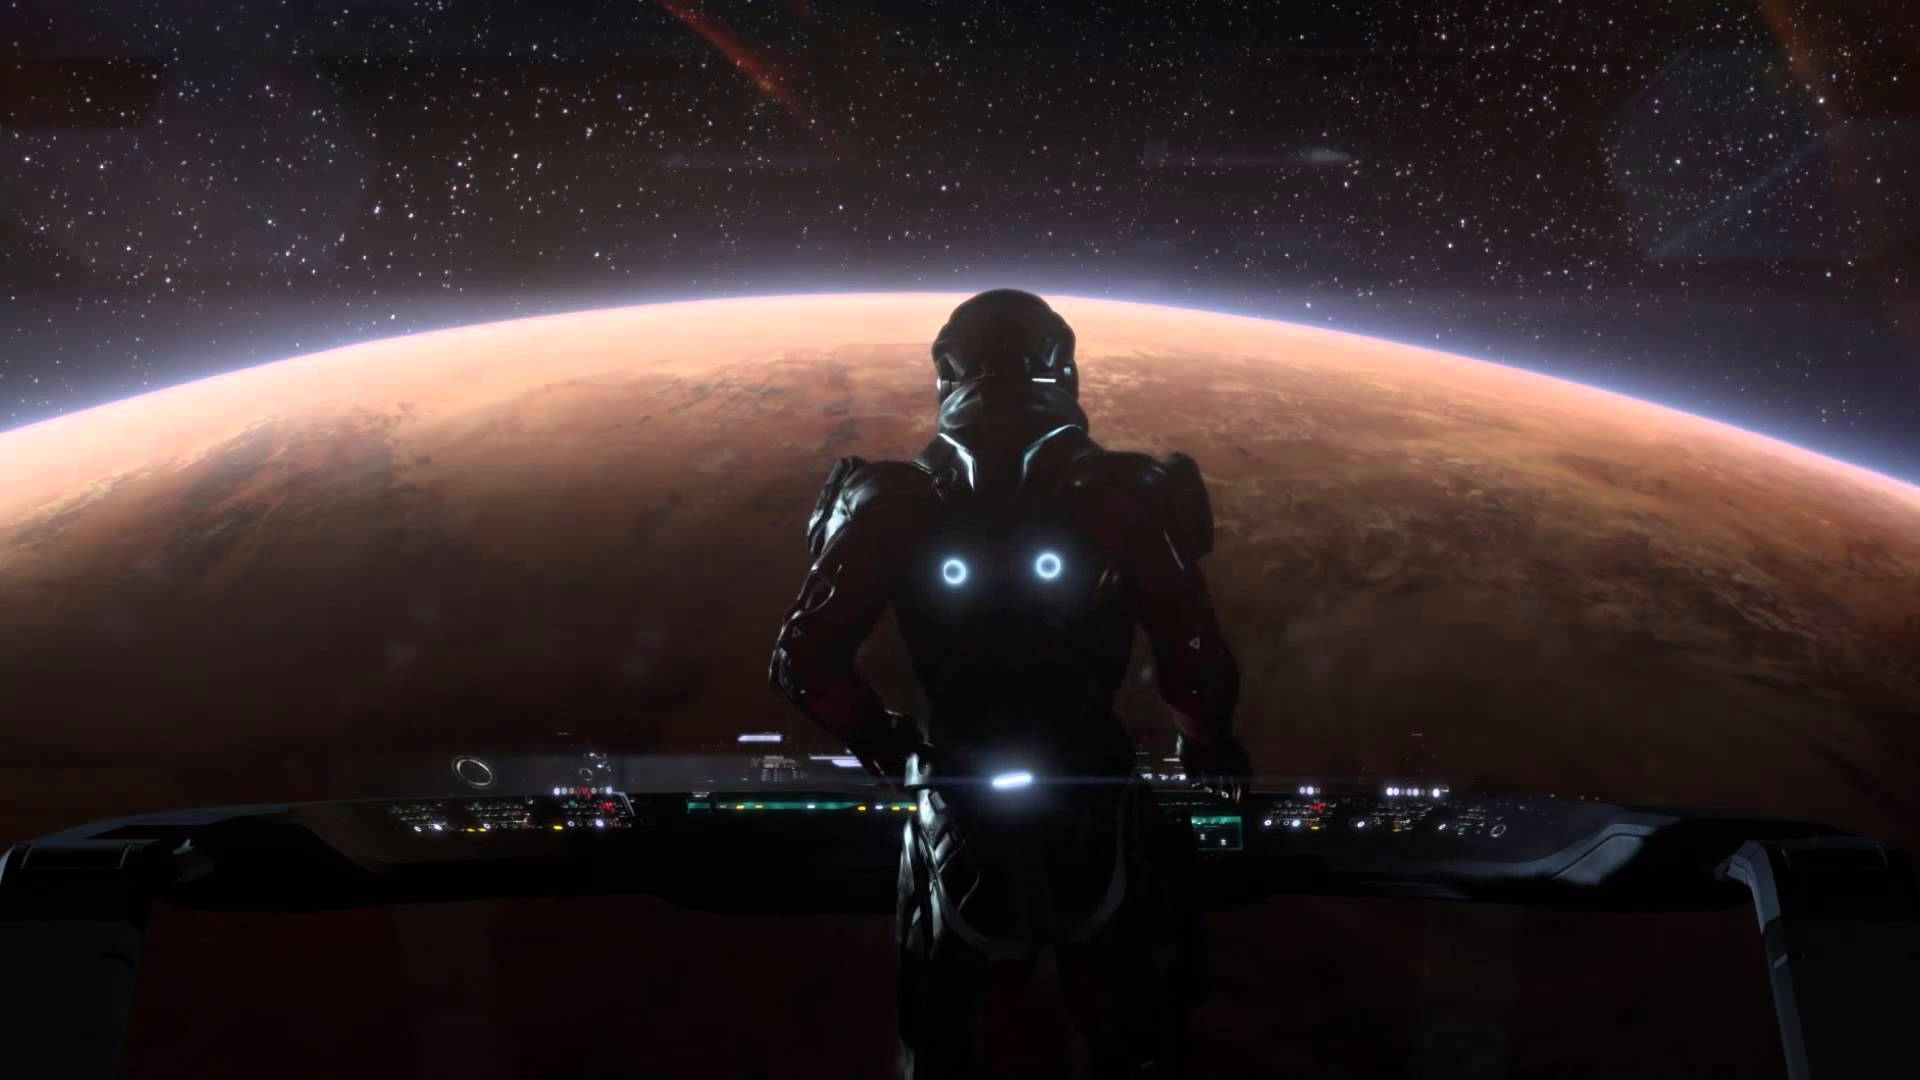 Mass Effect Andromeda Wallpapers HD